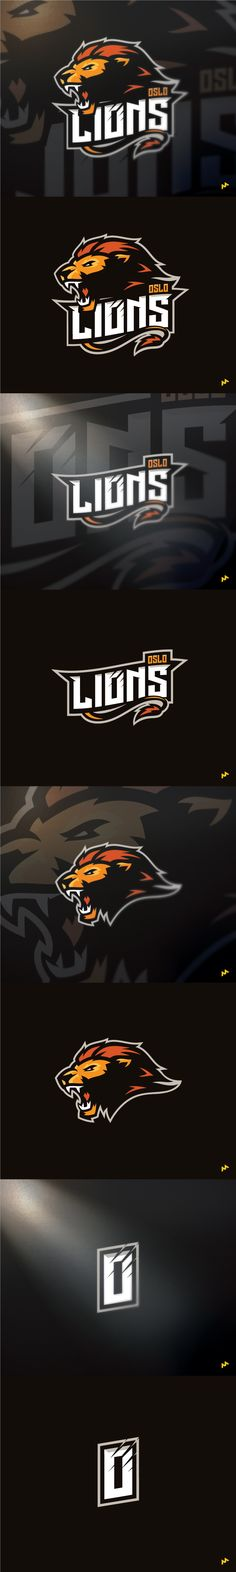 Oslo Lions on Behance